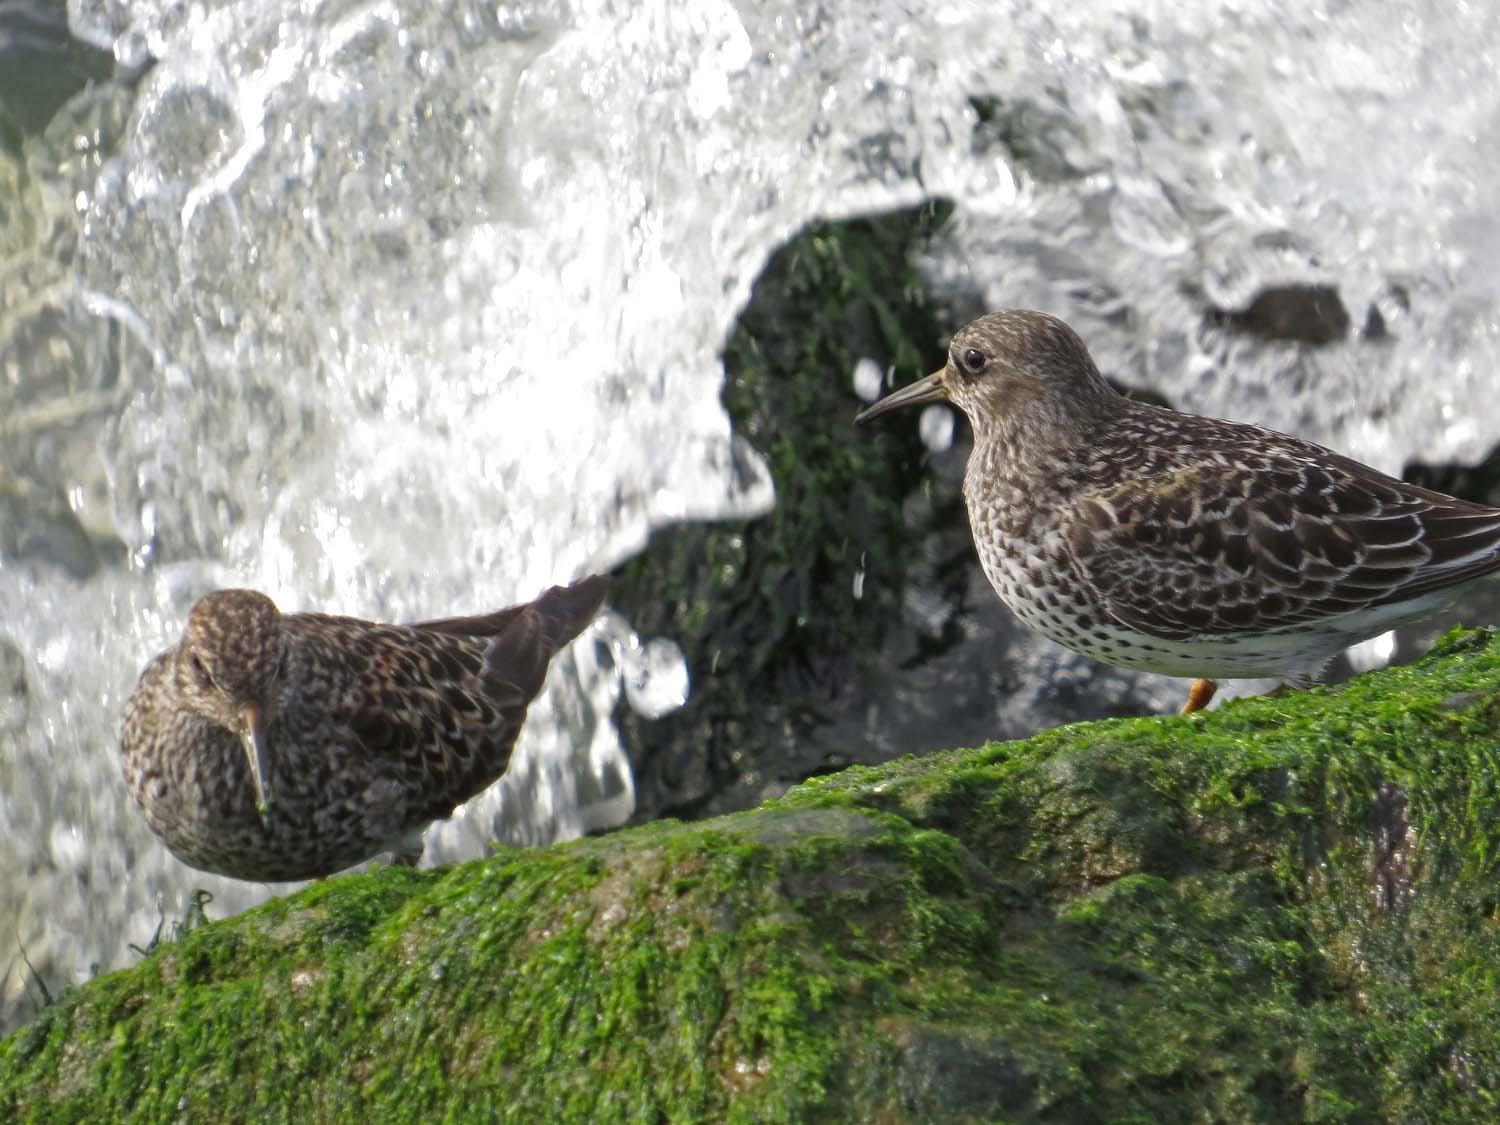 Purple sandpipers, Governors Island, May 12, 2017